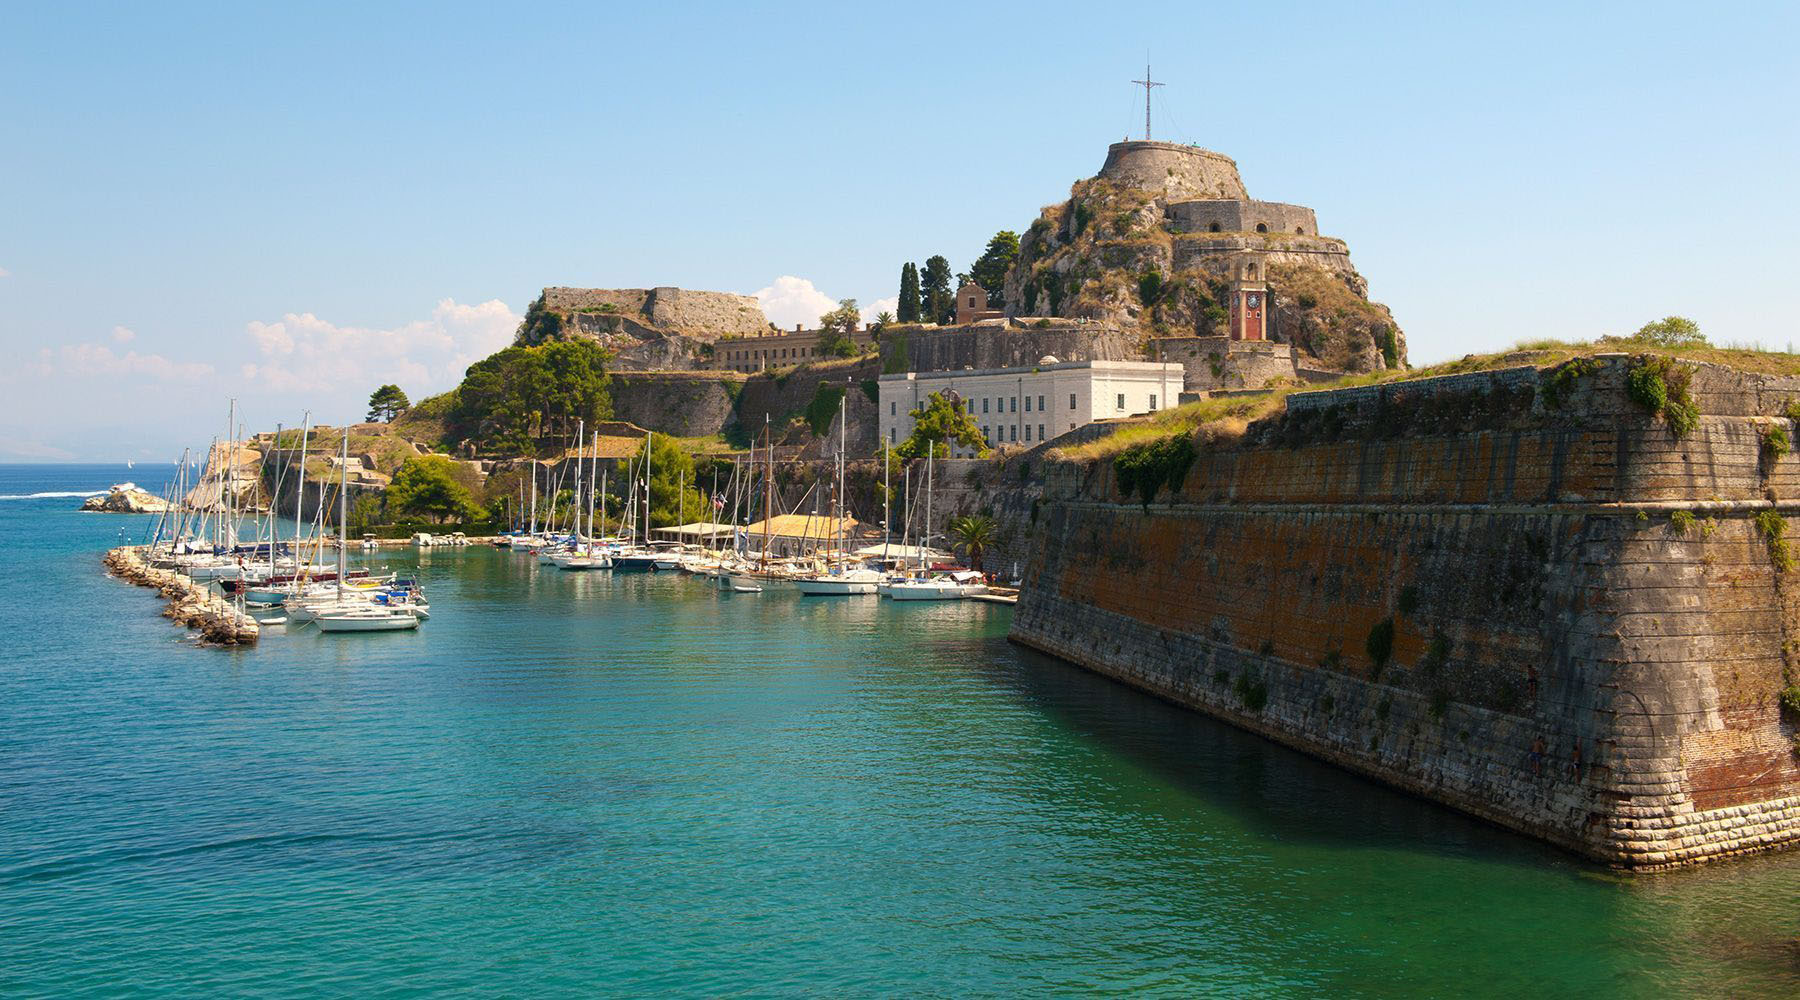 7 NIGHT ADRIATIC & GREECE VOYAGE